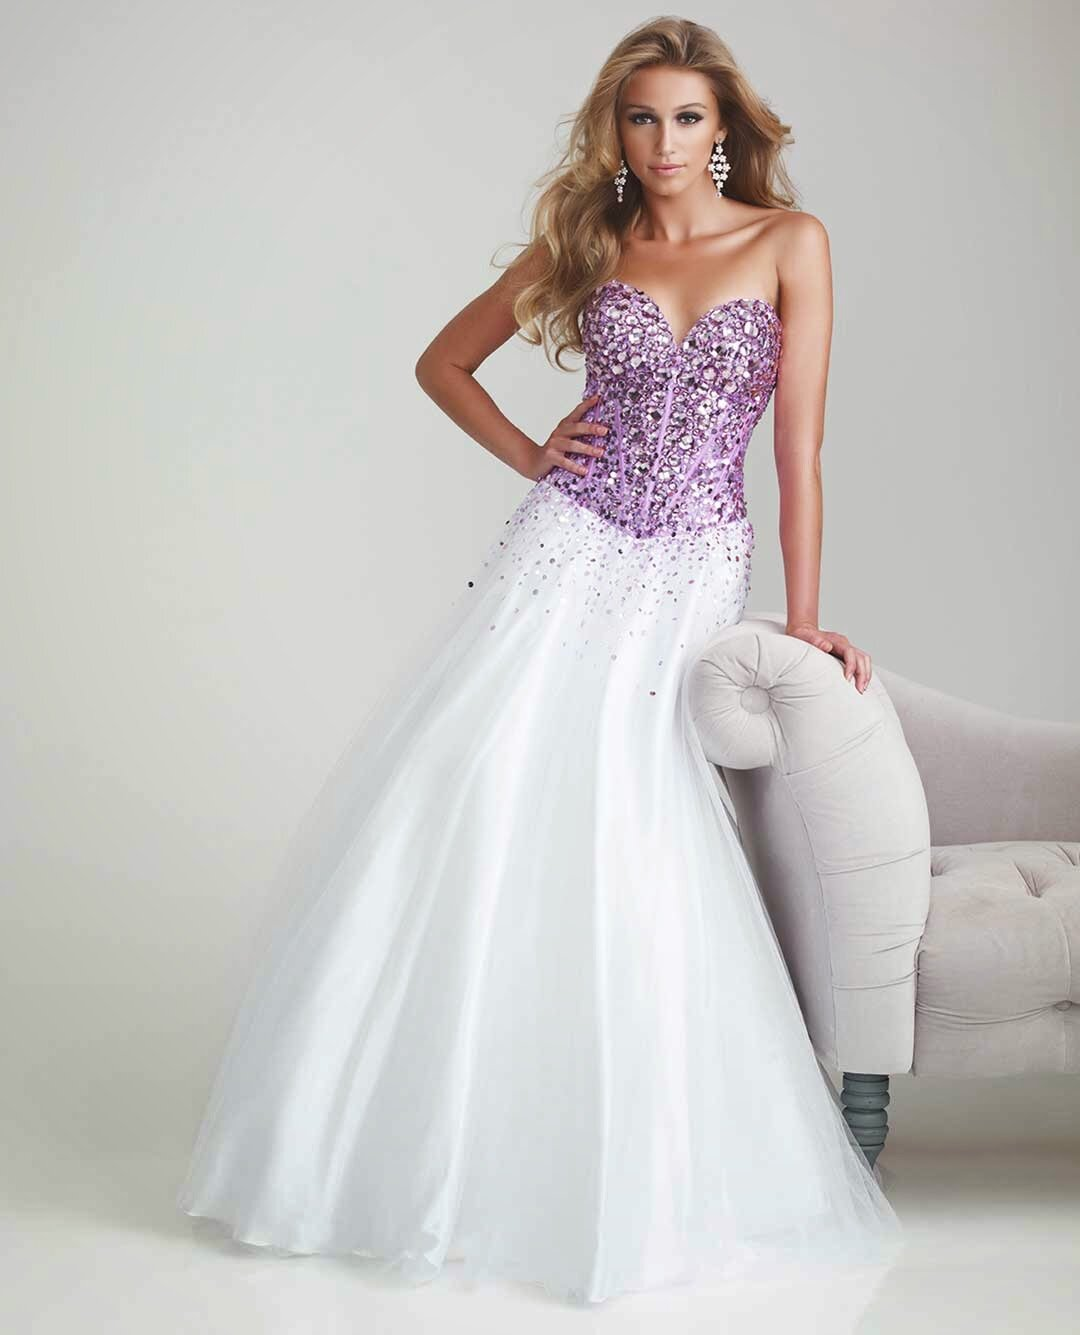 Purple and white wedding dresses Photo - 12